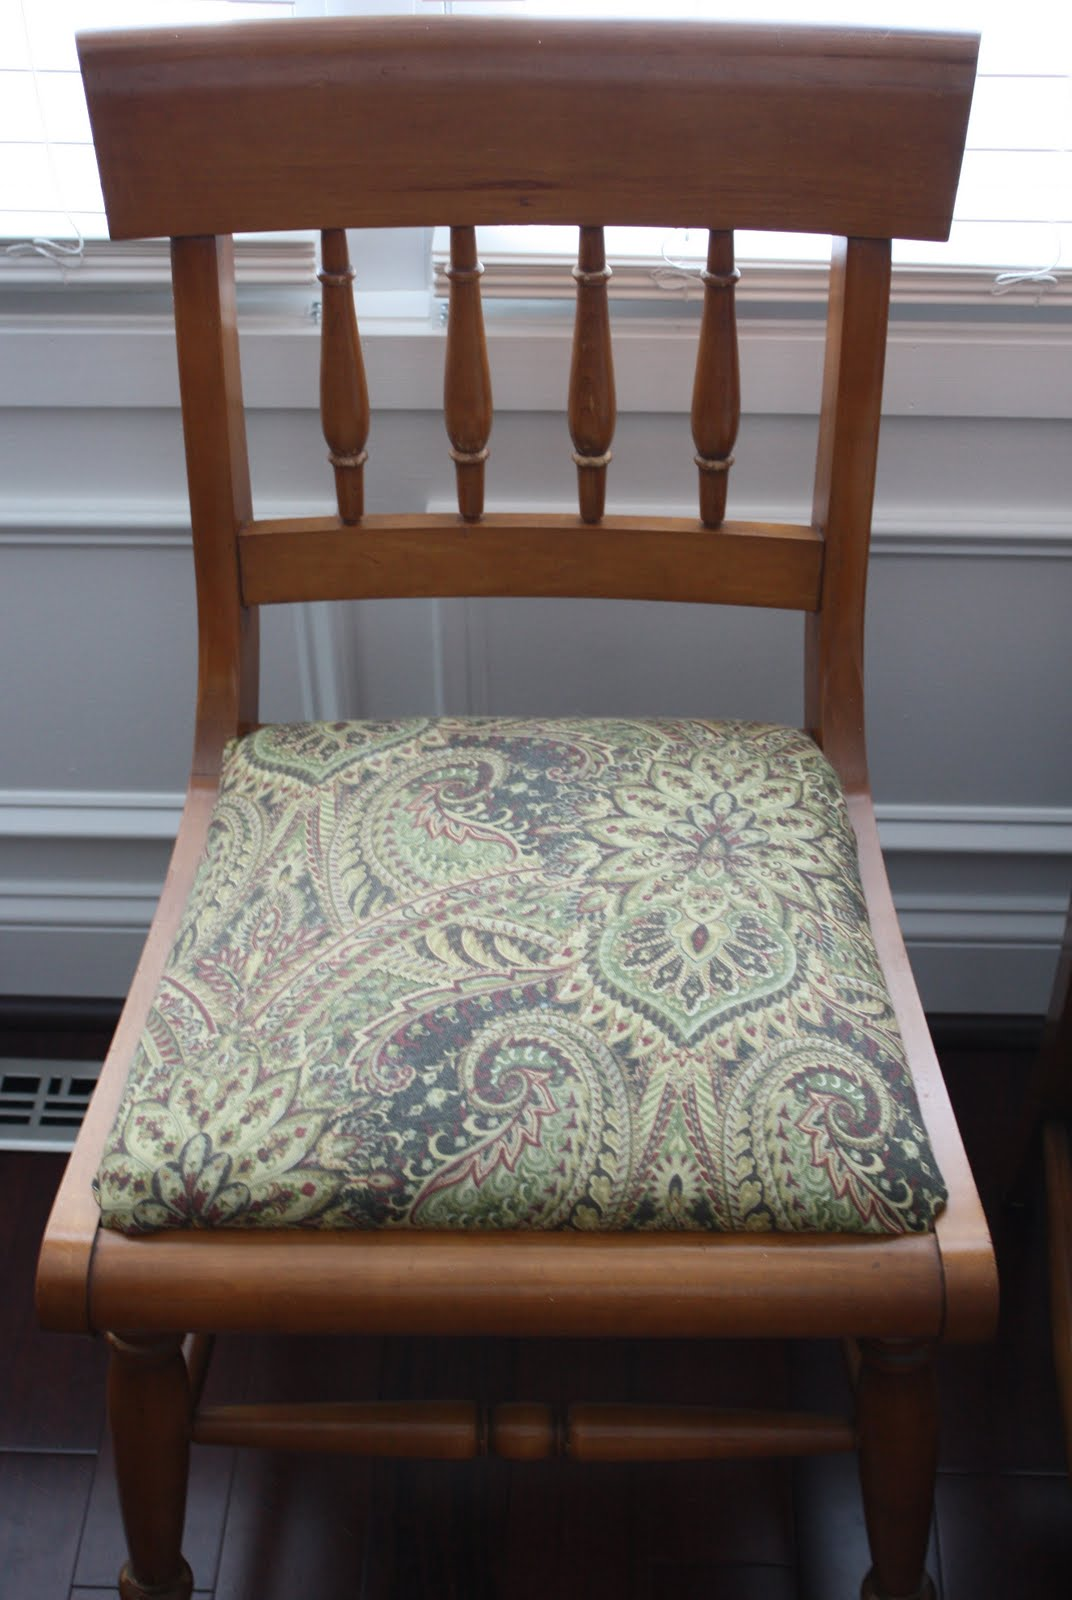 reupholster dining chairs spandex banquet chair covers a simple kind of life how to